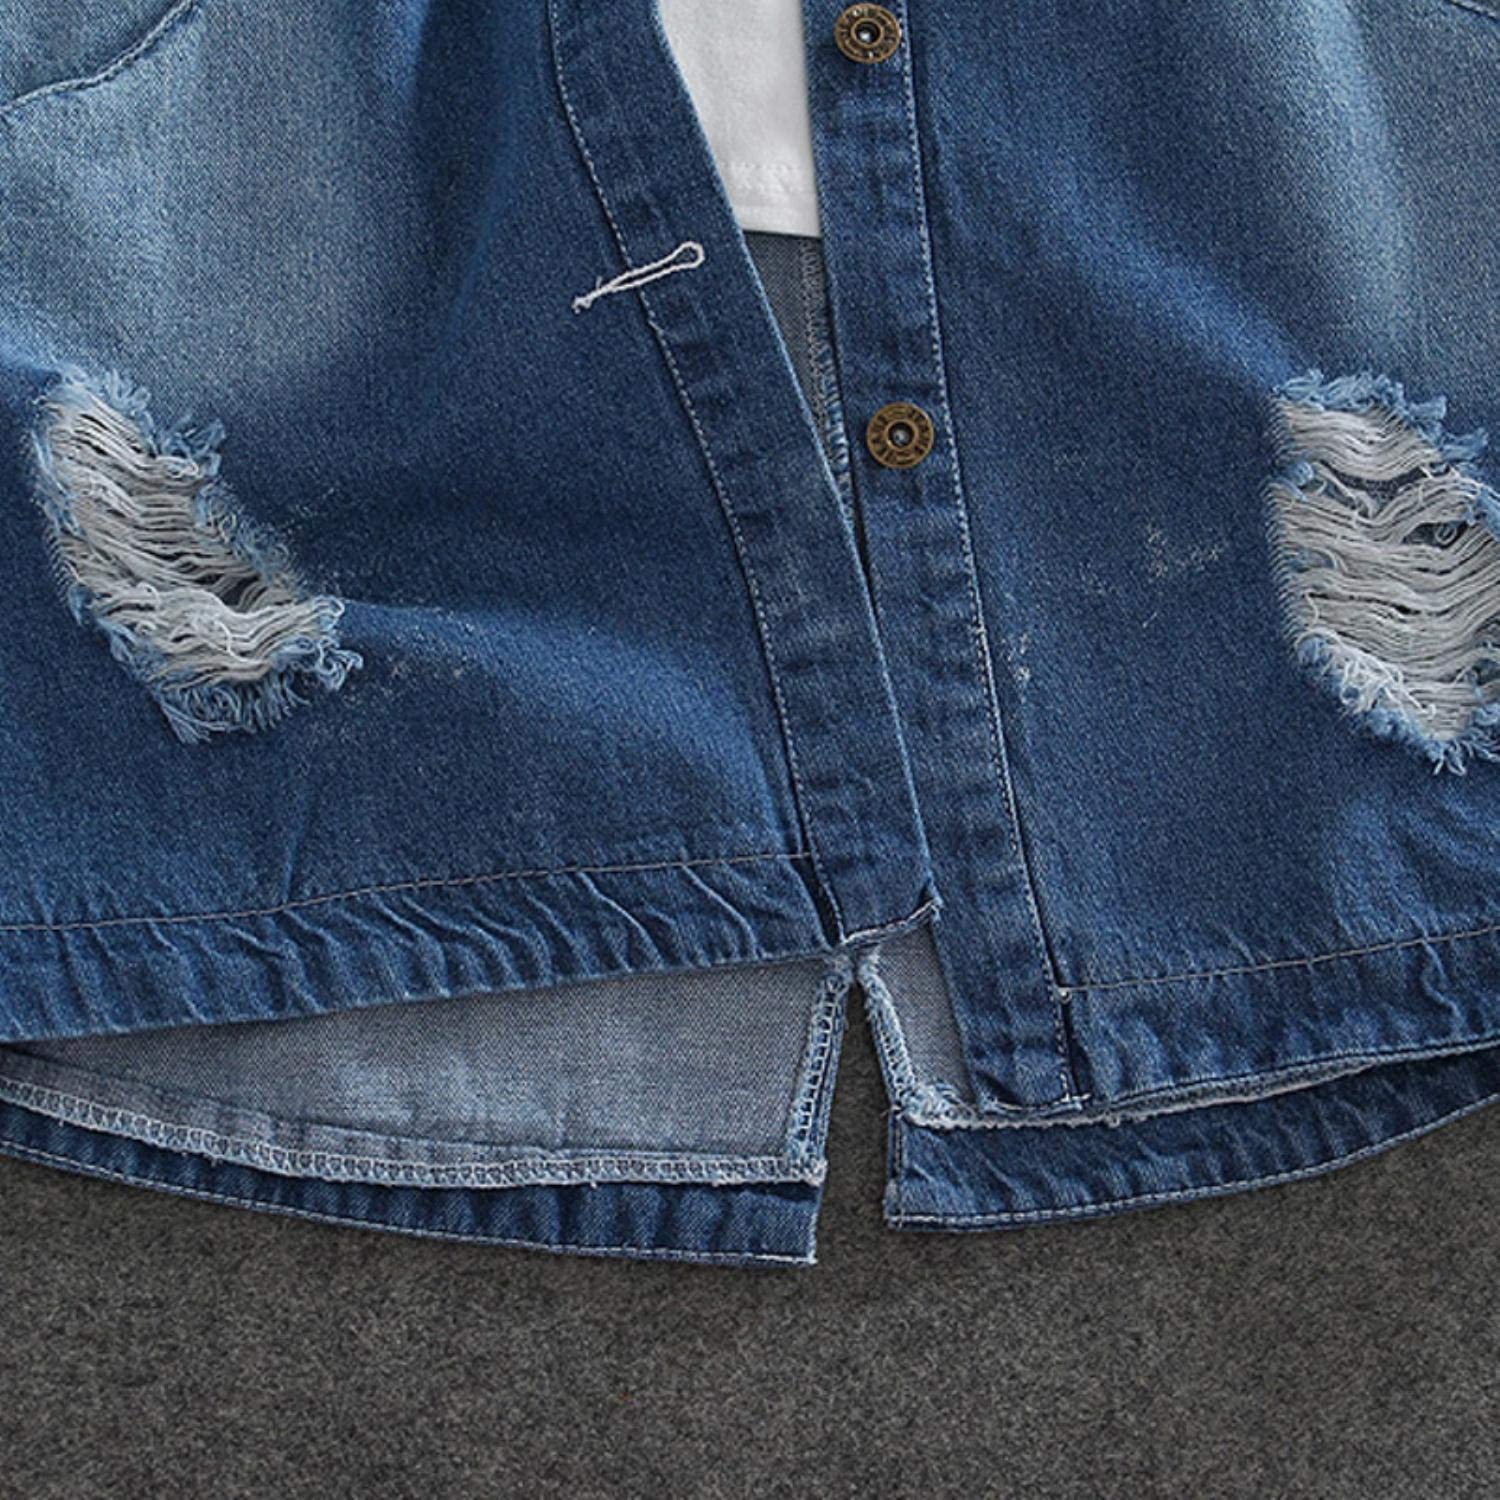 9XL Plus Size Spring Autumn Long Denim Jacket Women Casual Frayed Hole Letter Loose Jeans Coat Female Oversize Outwear Vest Light Blue